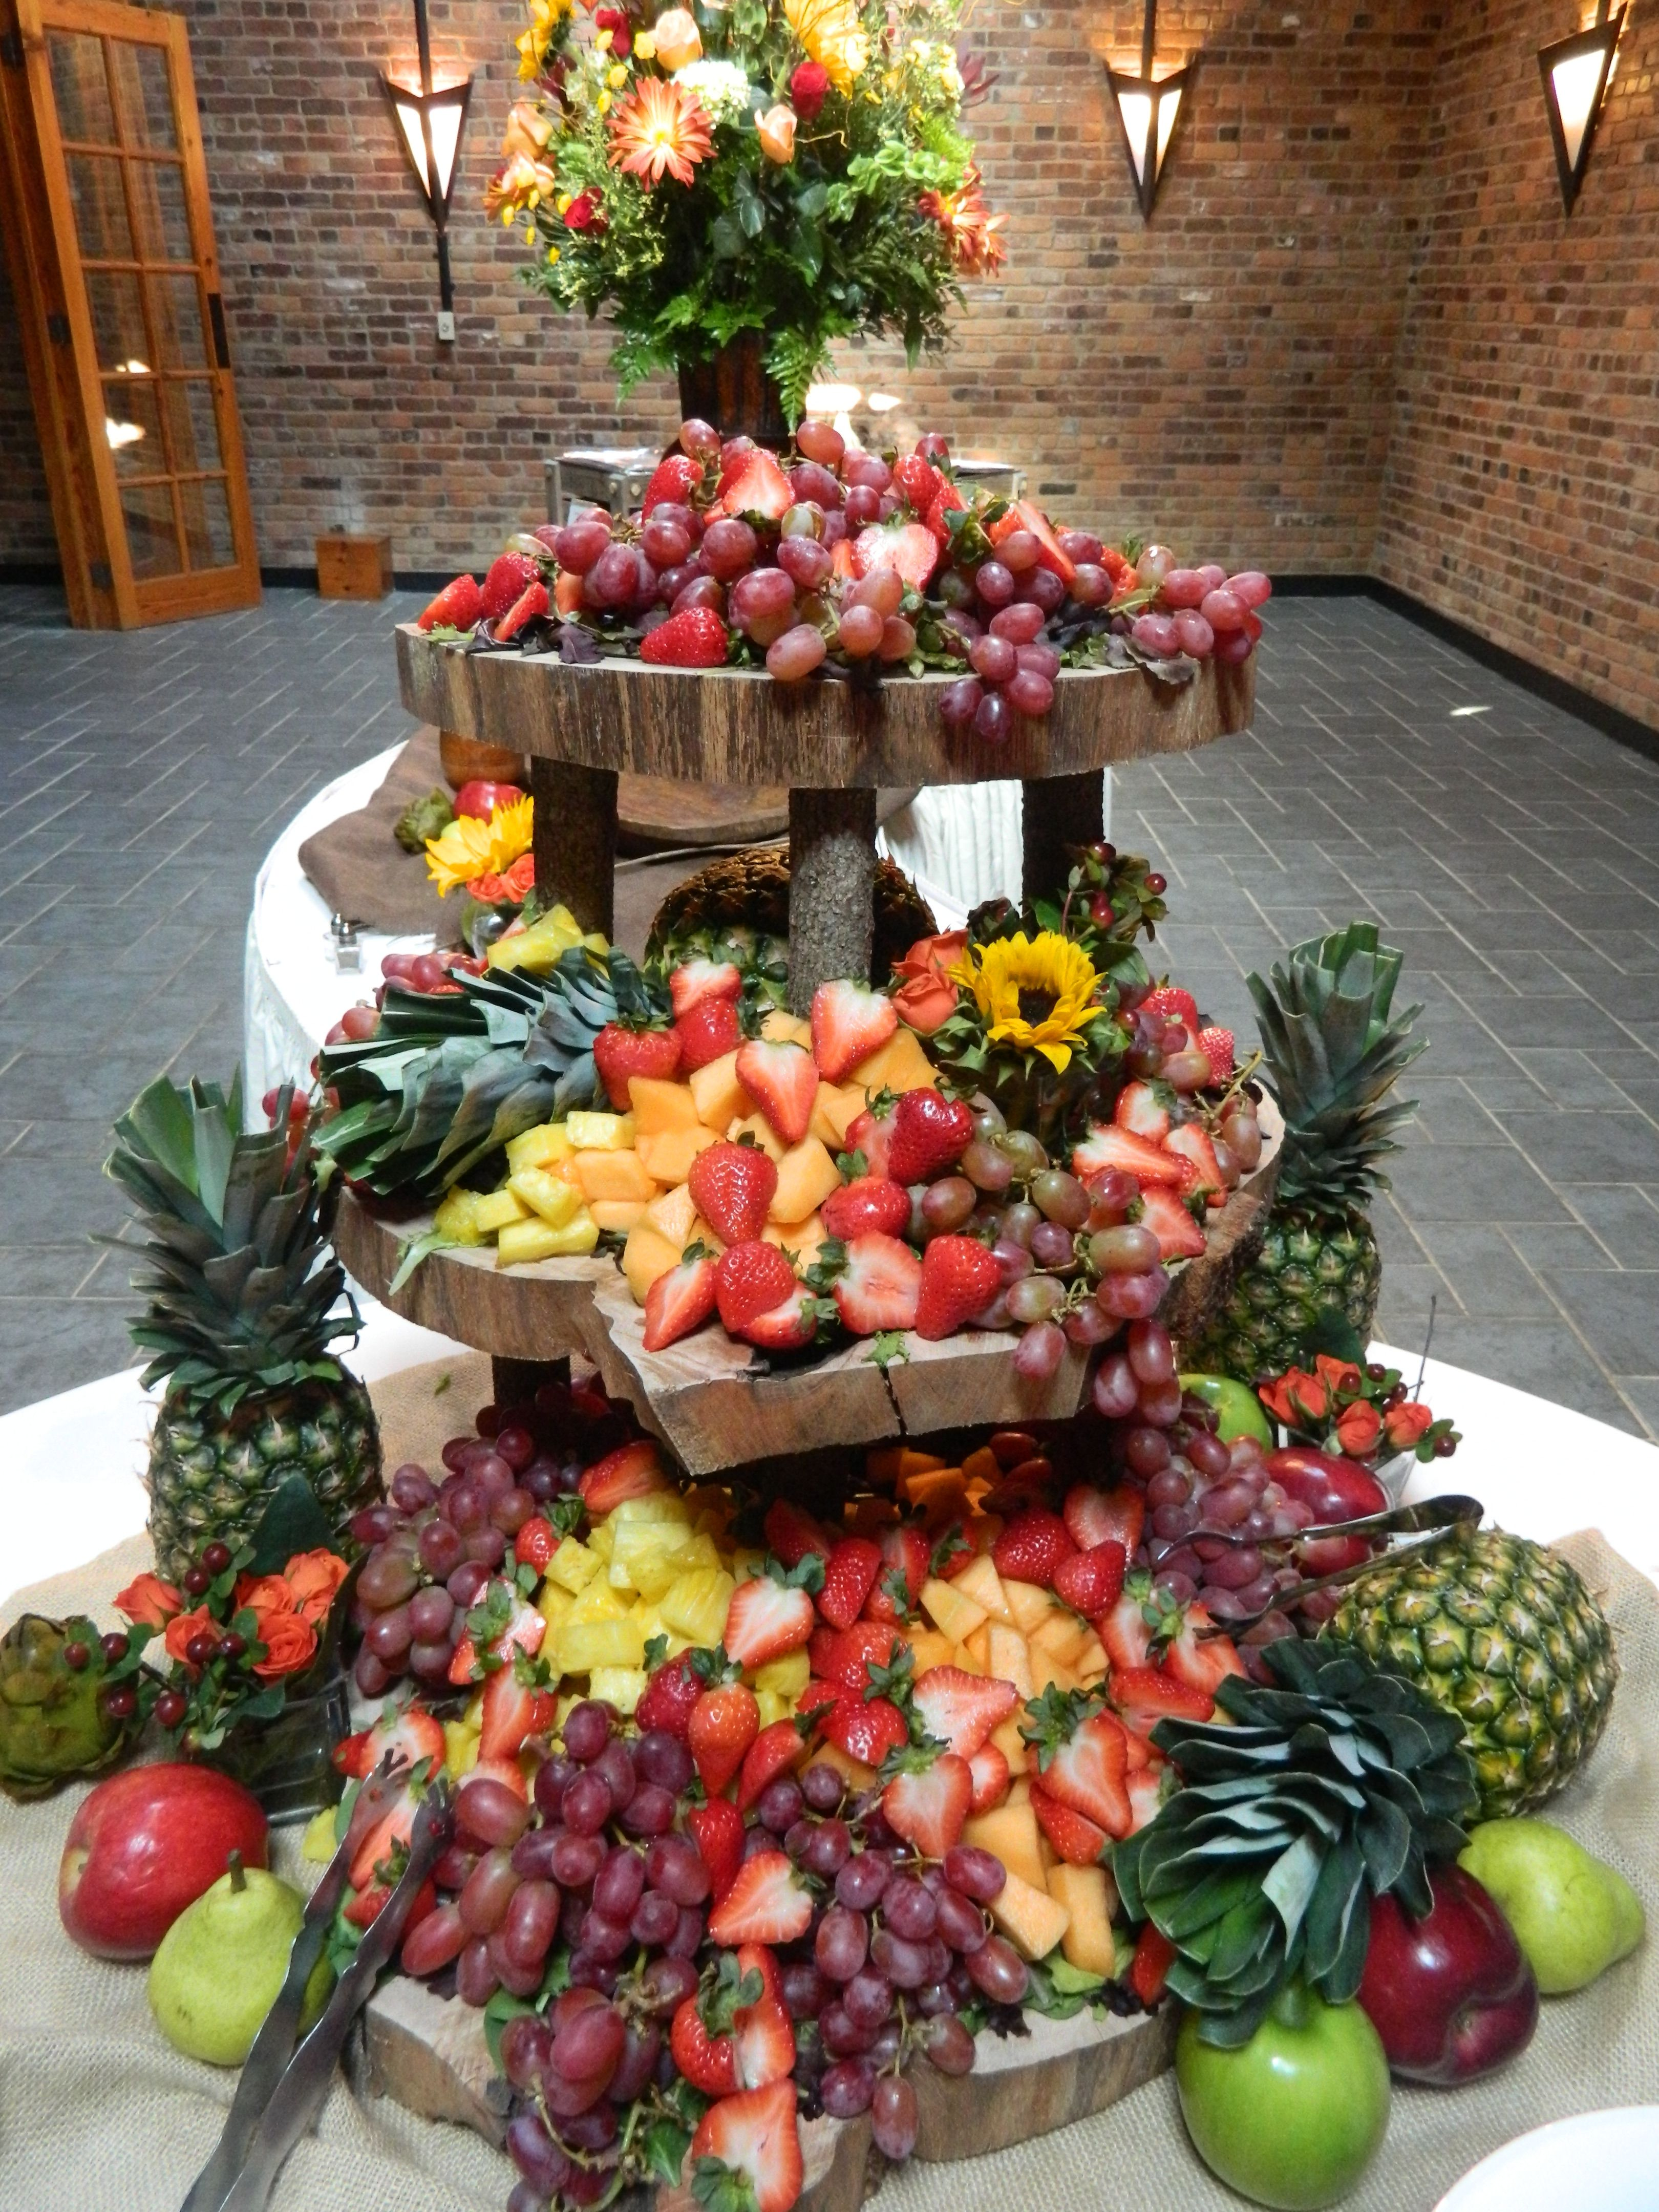 Beautiful Fruit Display Catering By The Perfect Pear Catering, LLC